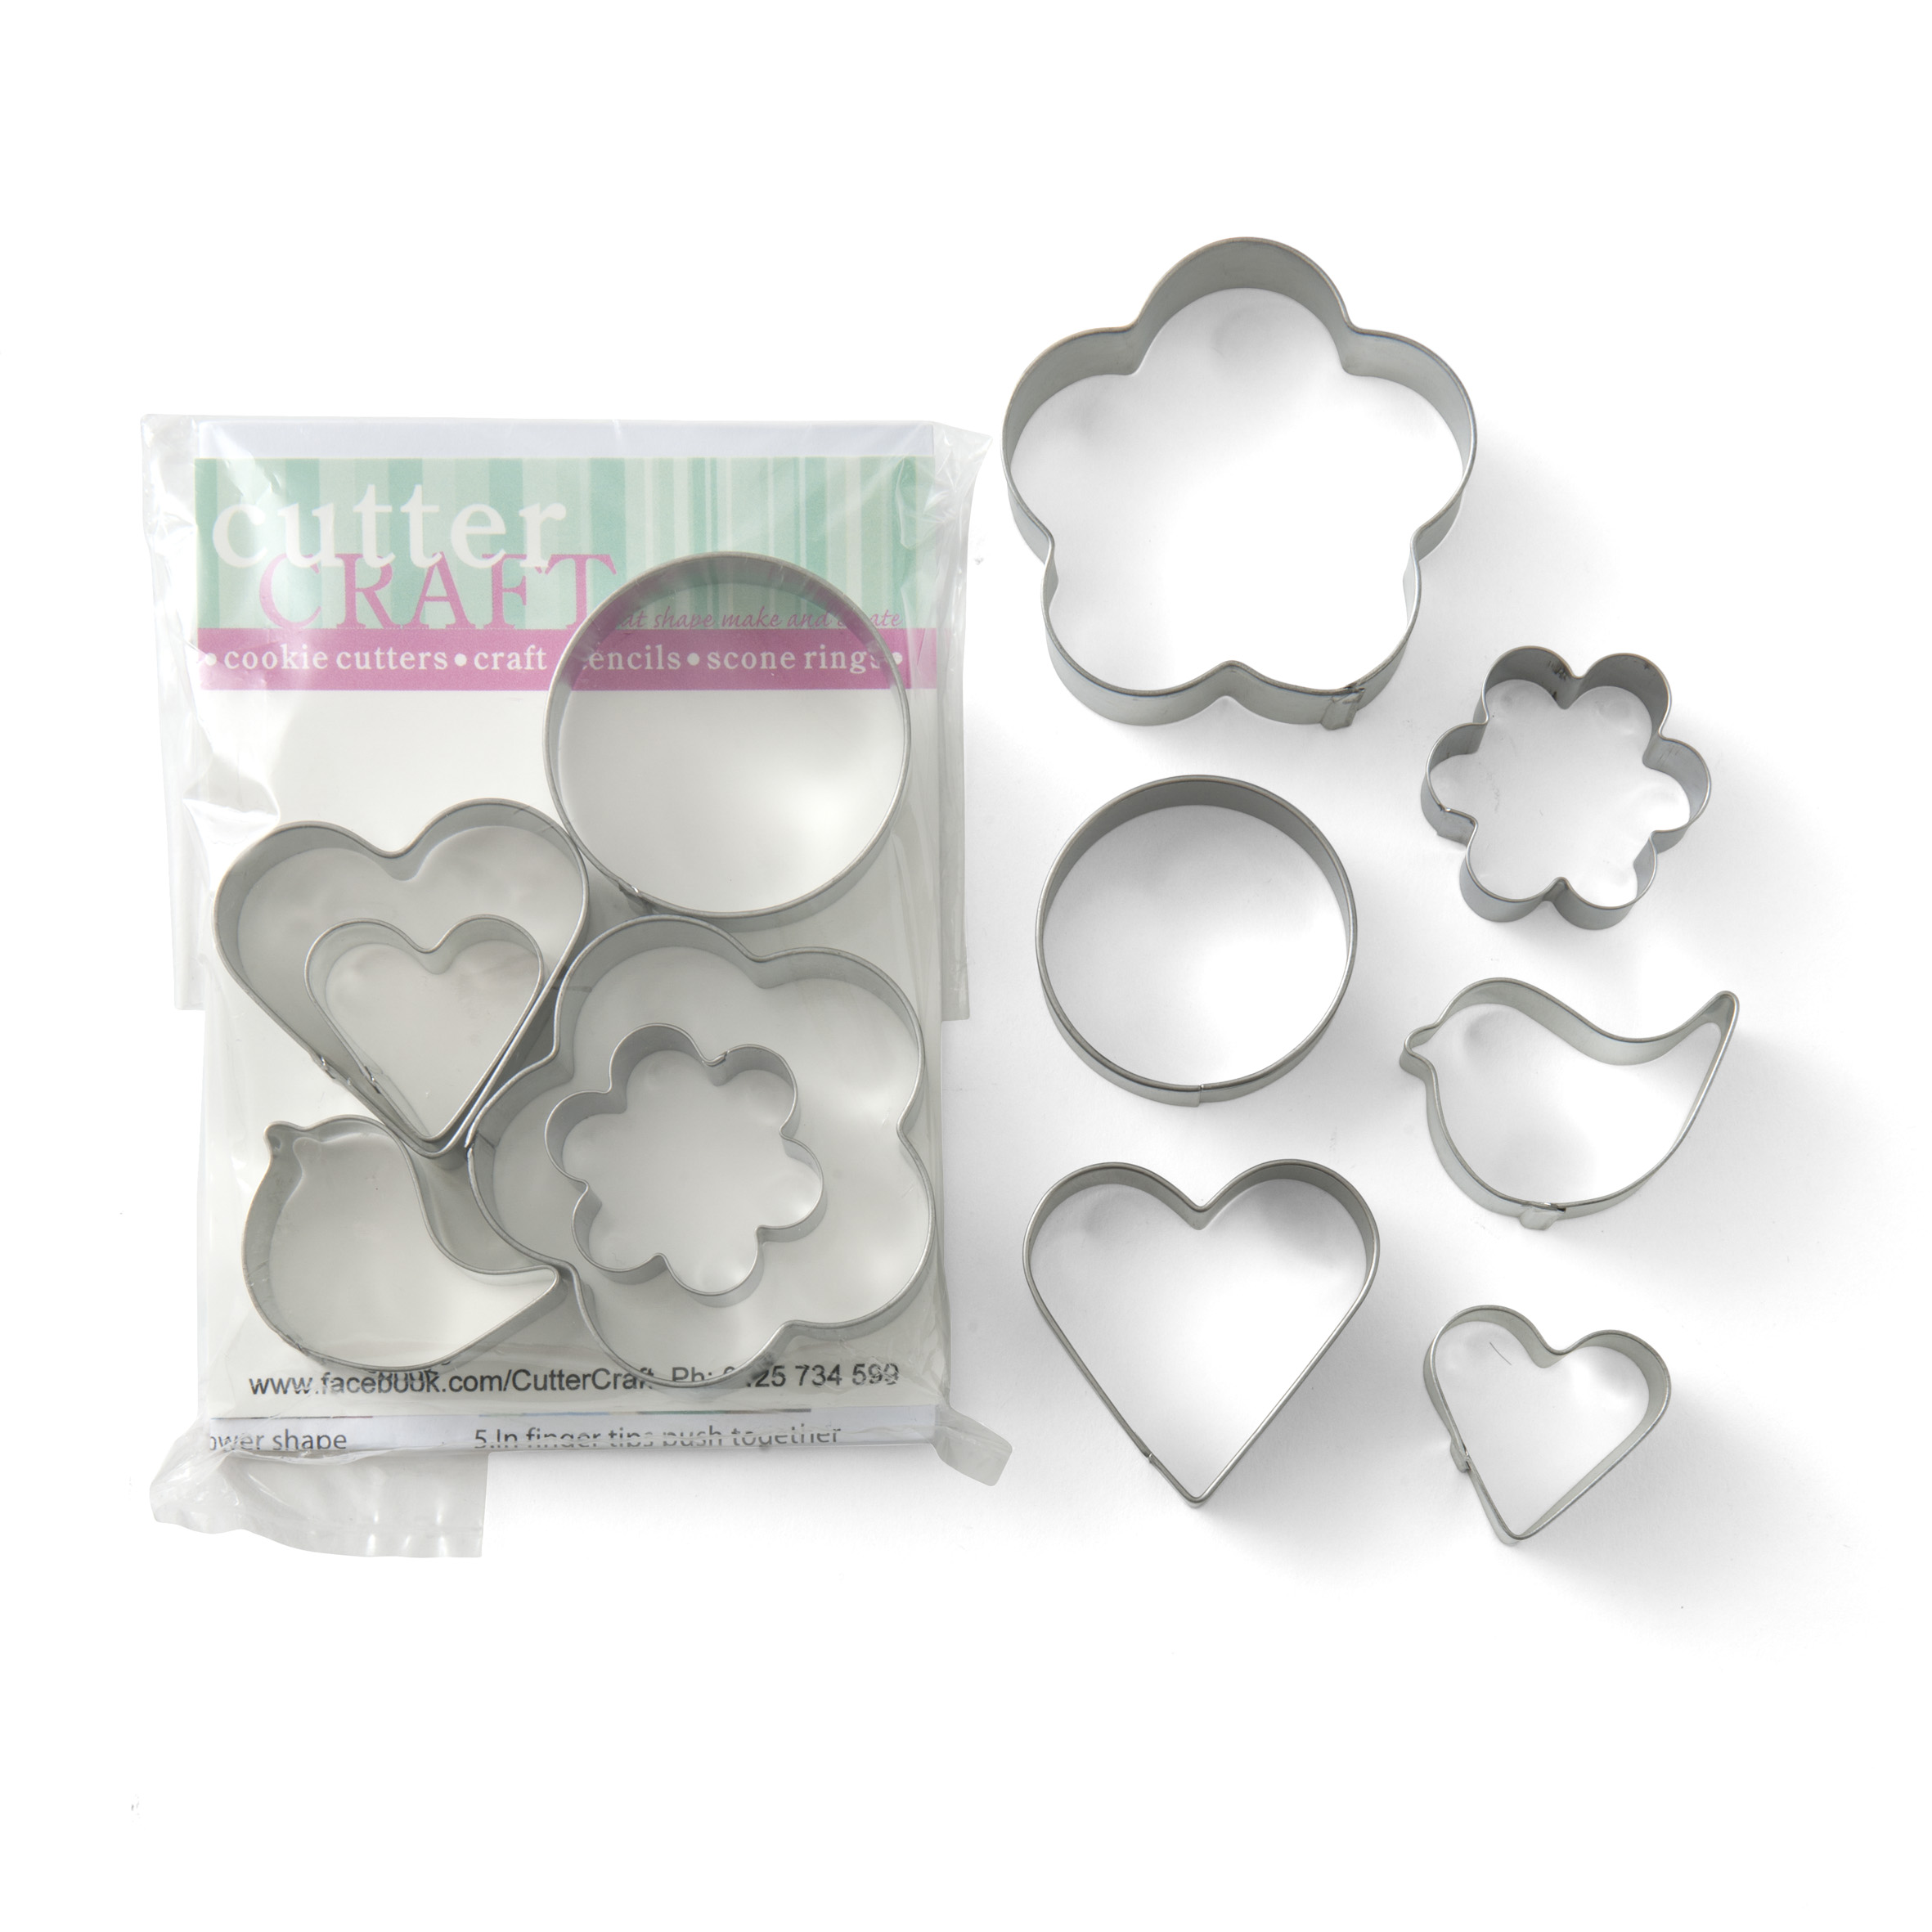 Bird and shapes cookie cutter set